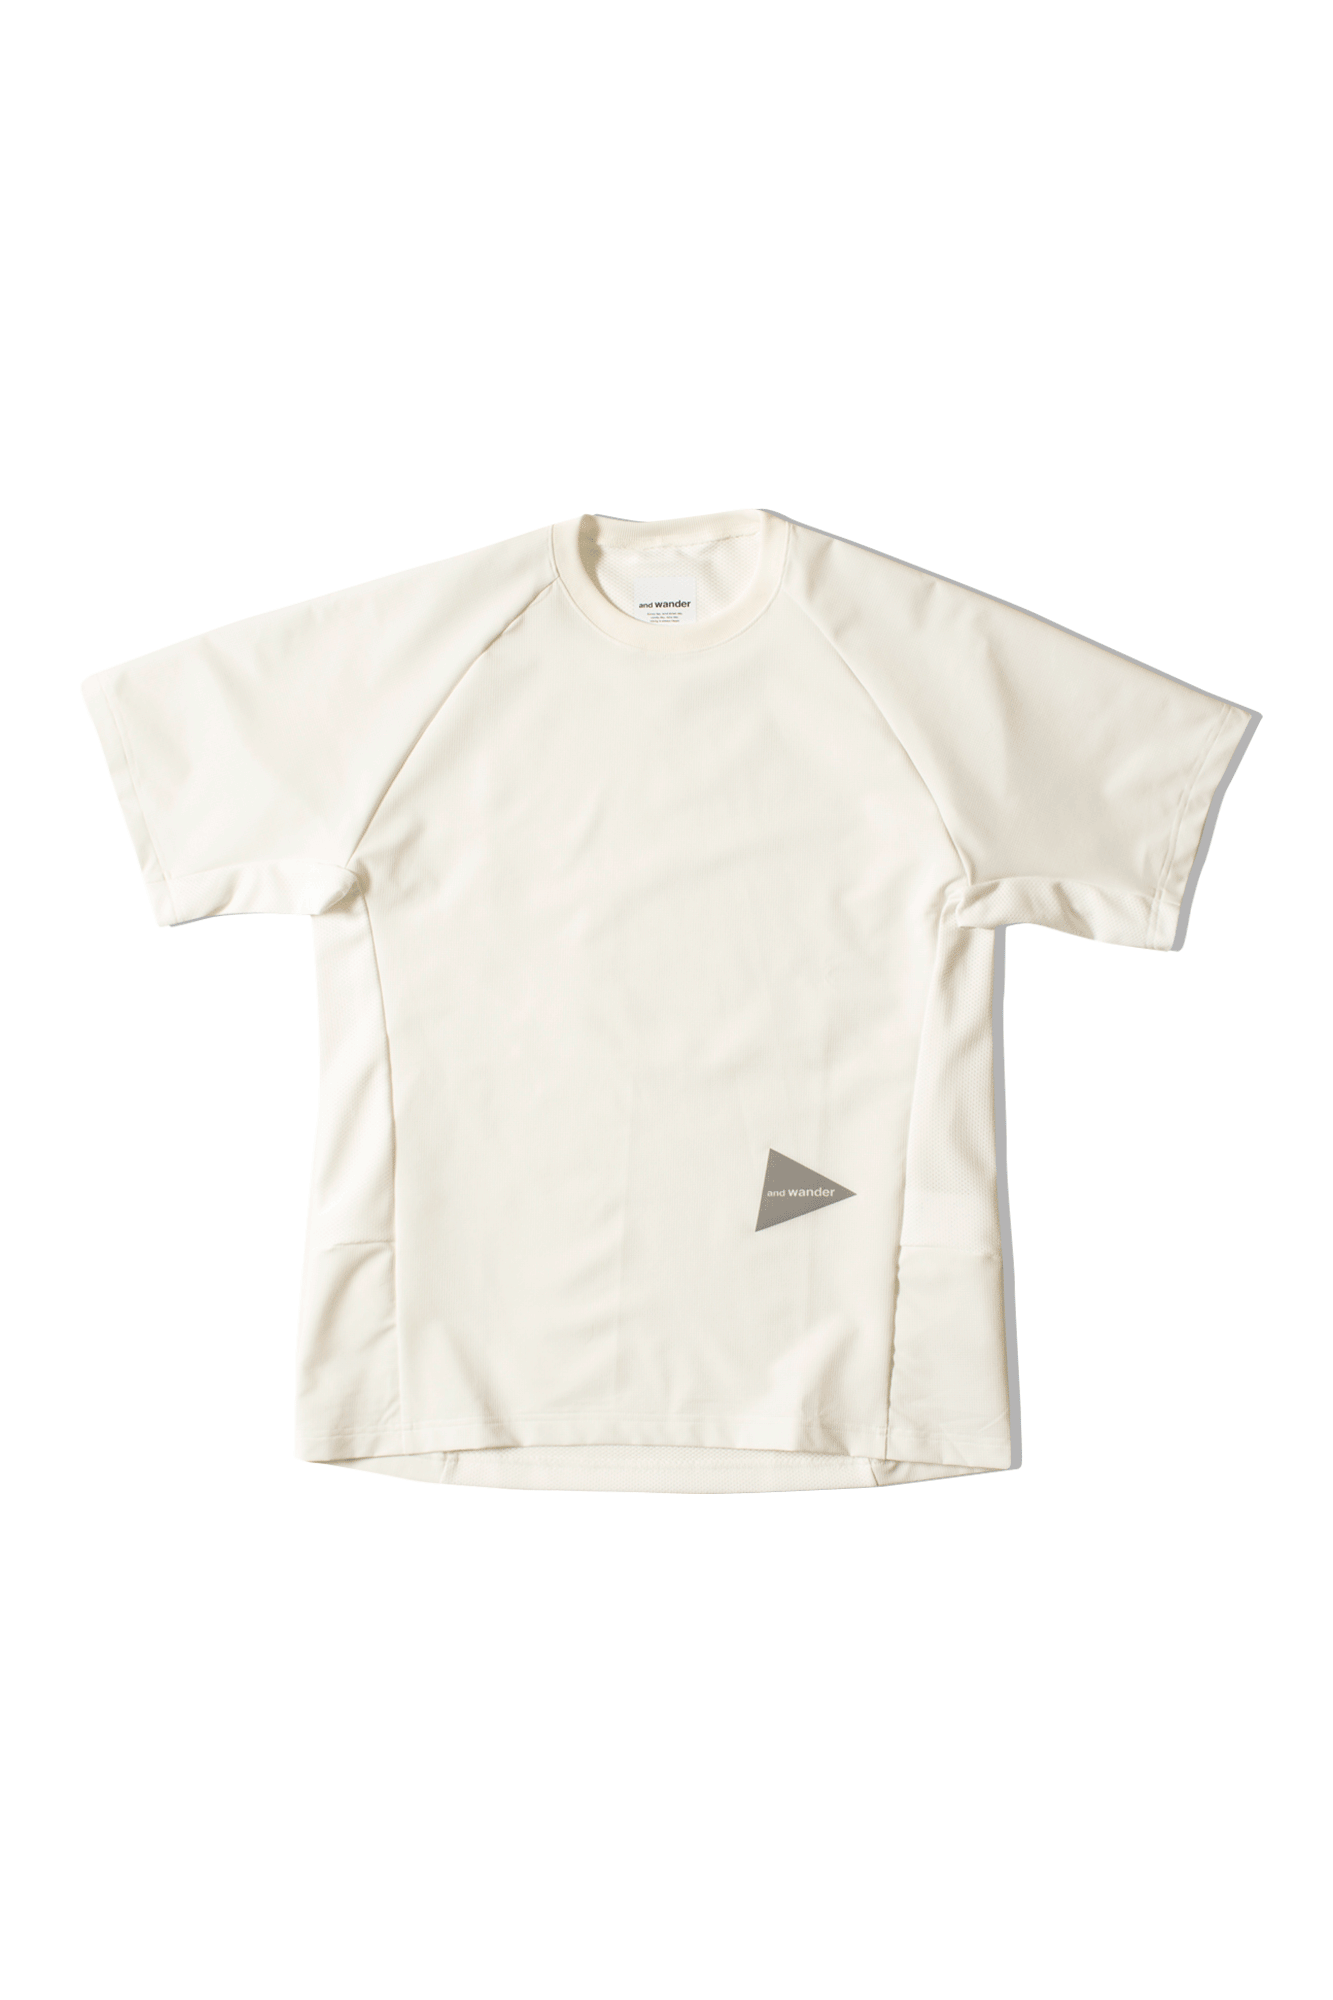 And Wander T-Shirts Hybrid Base S/SL Tee Bianco AW91-FT023#000#WHT#4 - One Block Down